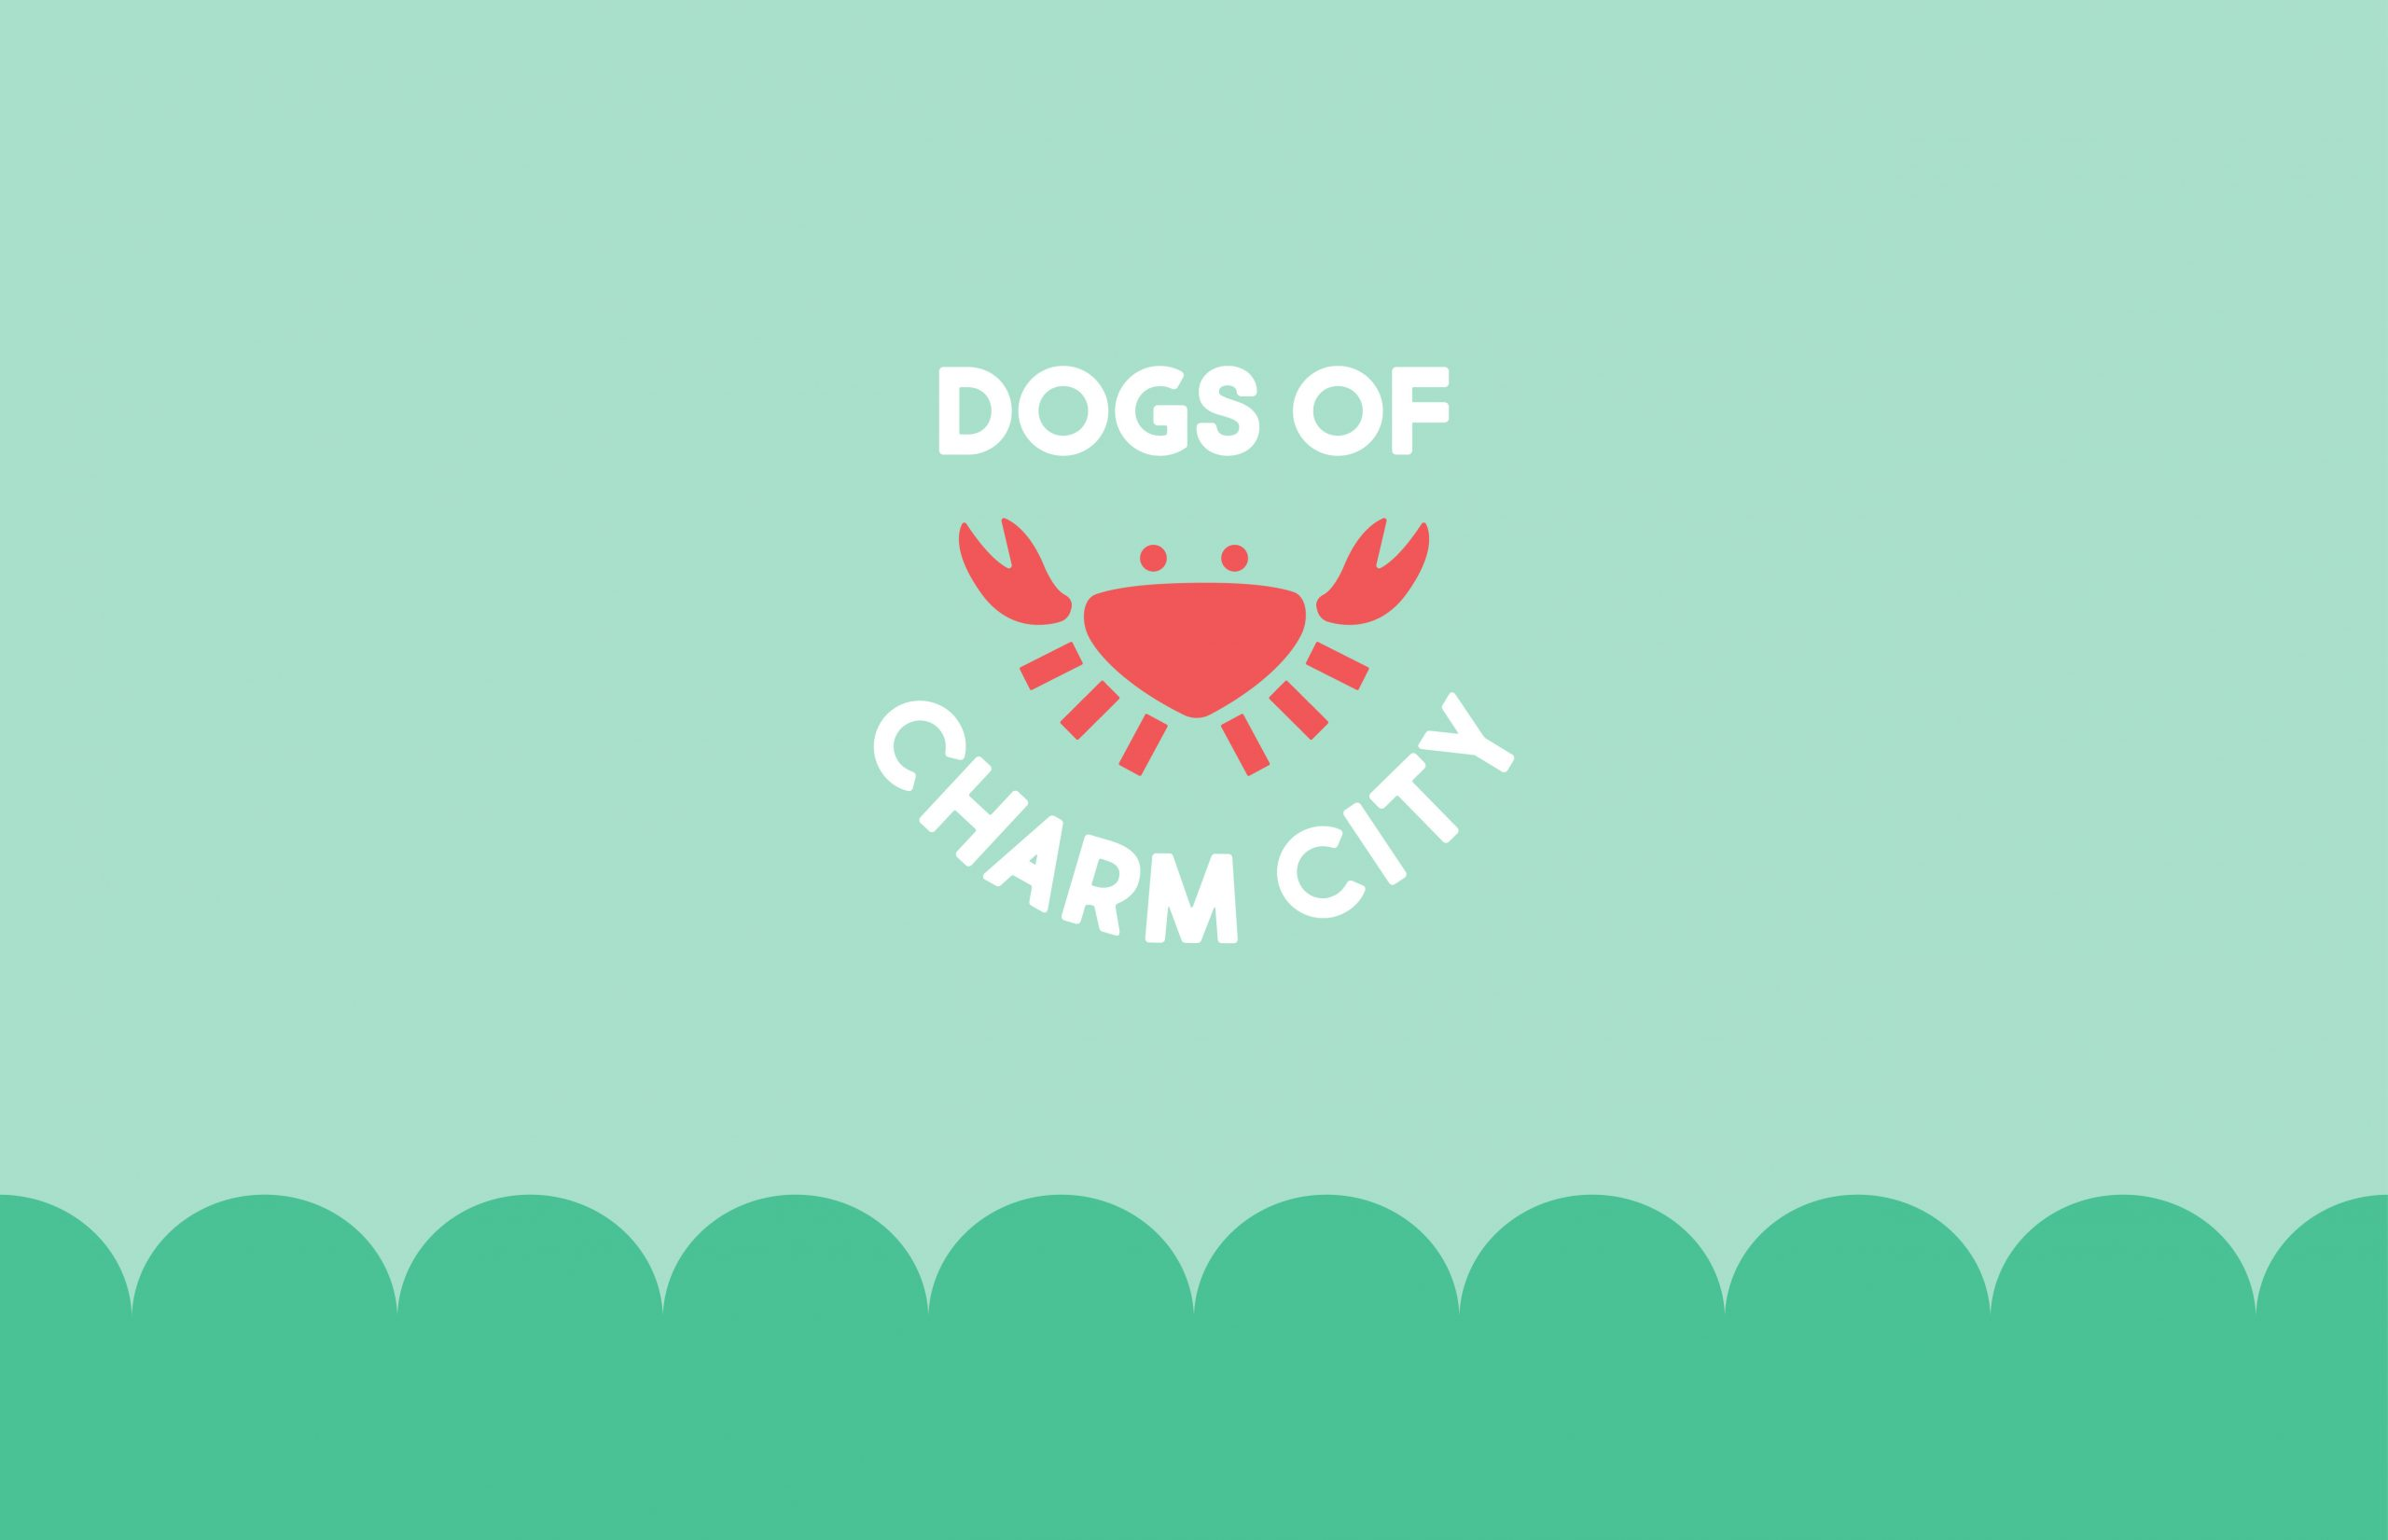 Dogs of Charm City logo